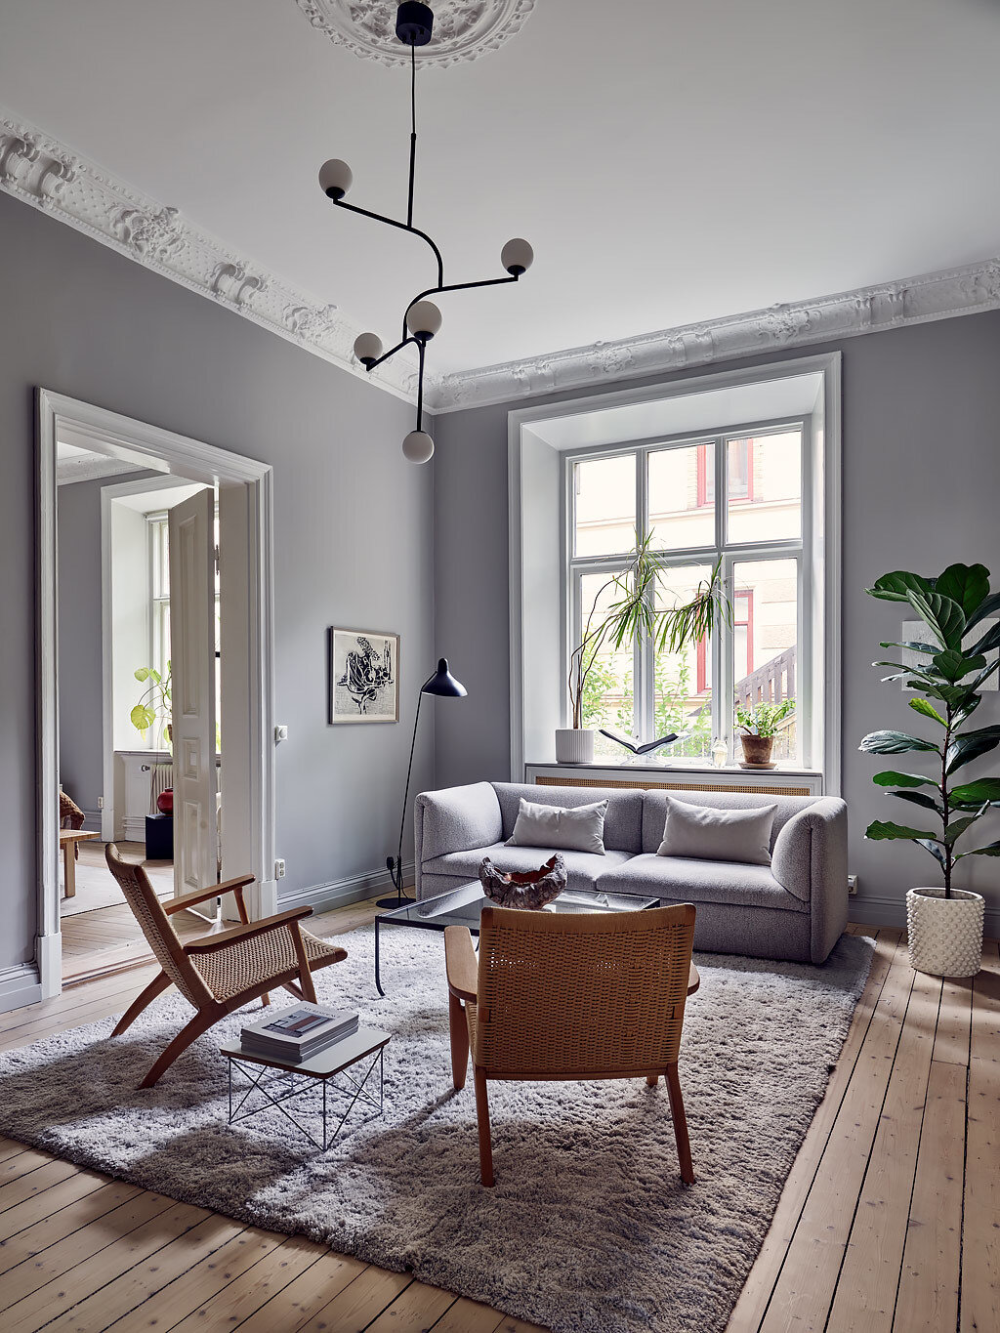 A Serene Scandinavian Apartment Decorated in Grey Tones — THE NORDROOM   Stue væg, Stue ...